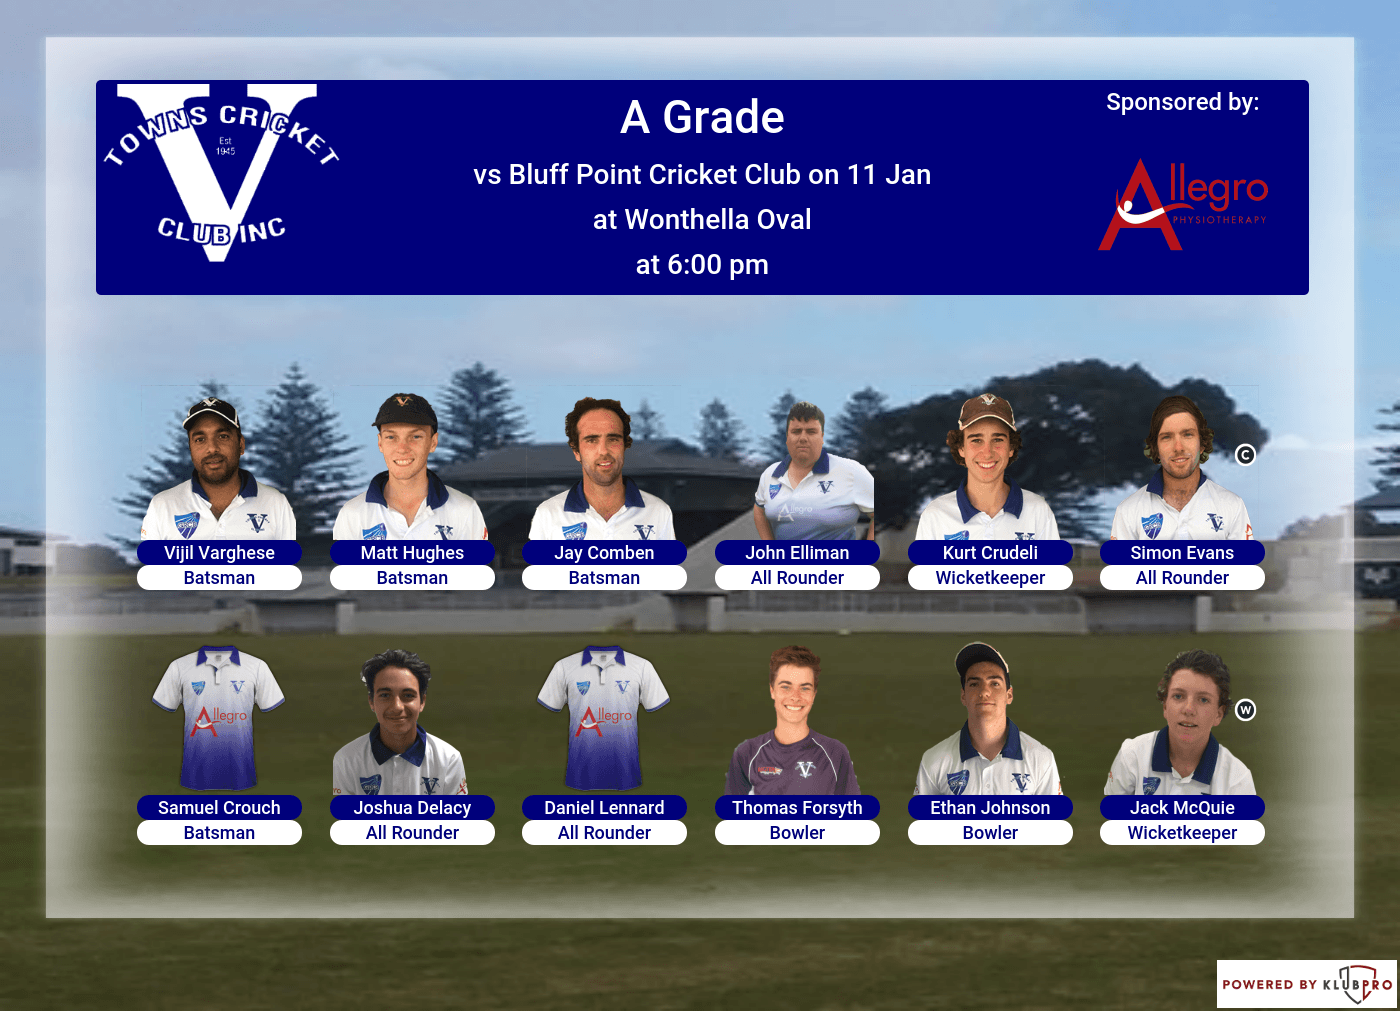 Towns Cricket Club-team-lineup-A Grade-Round 14-1564027845502 (1).png